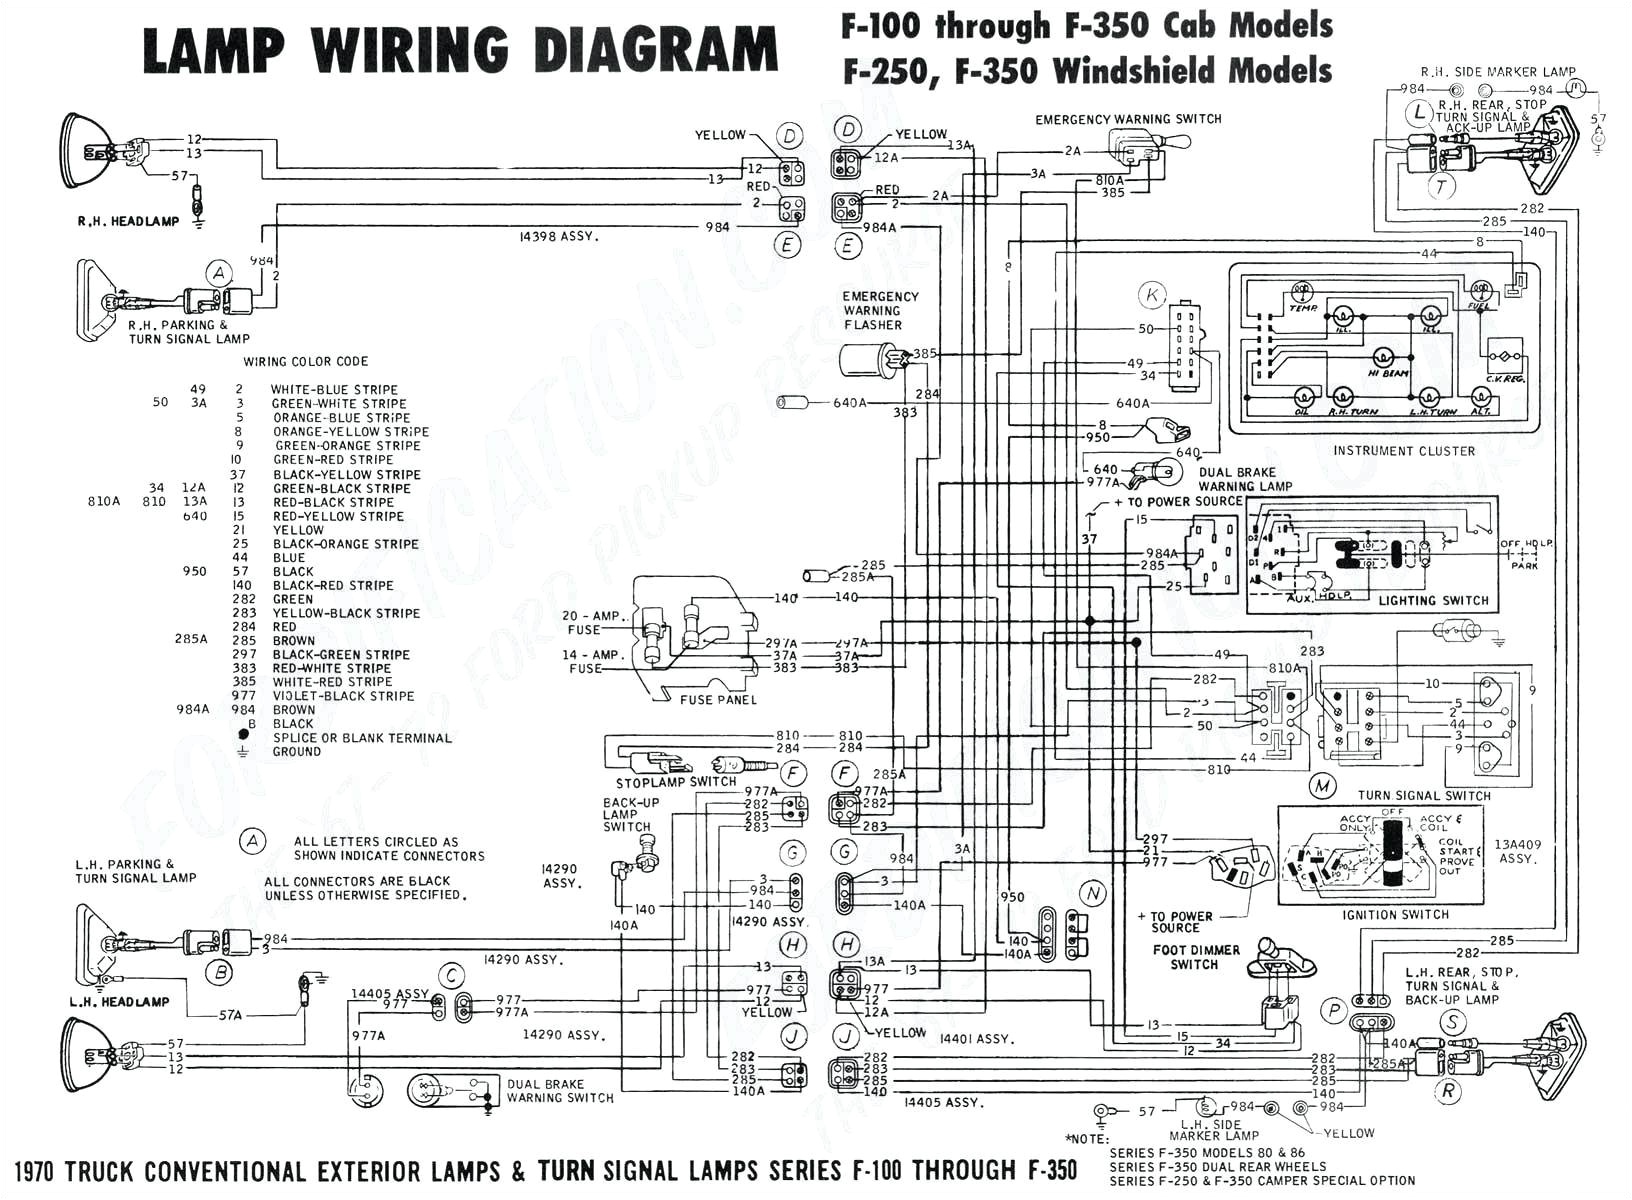 1994 buick lesabre fuse diagram wiring diagram paper fuse box location 1994 buick century engine wiring